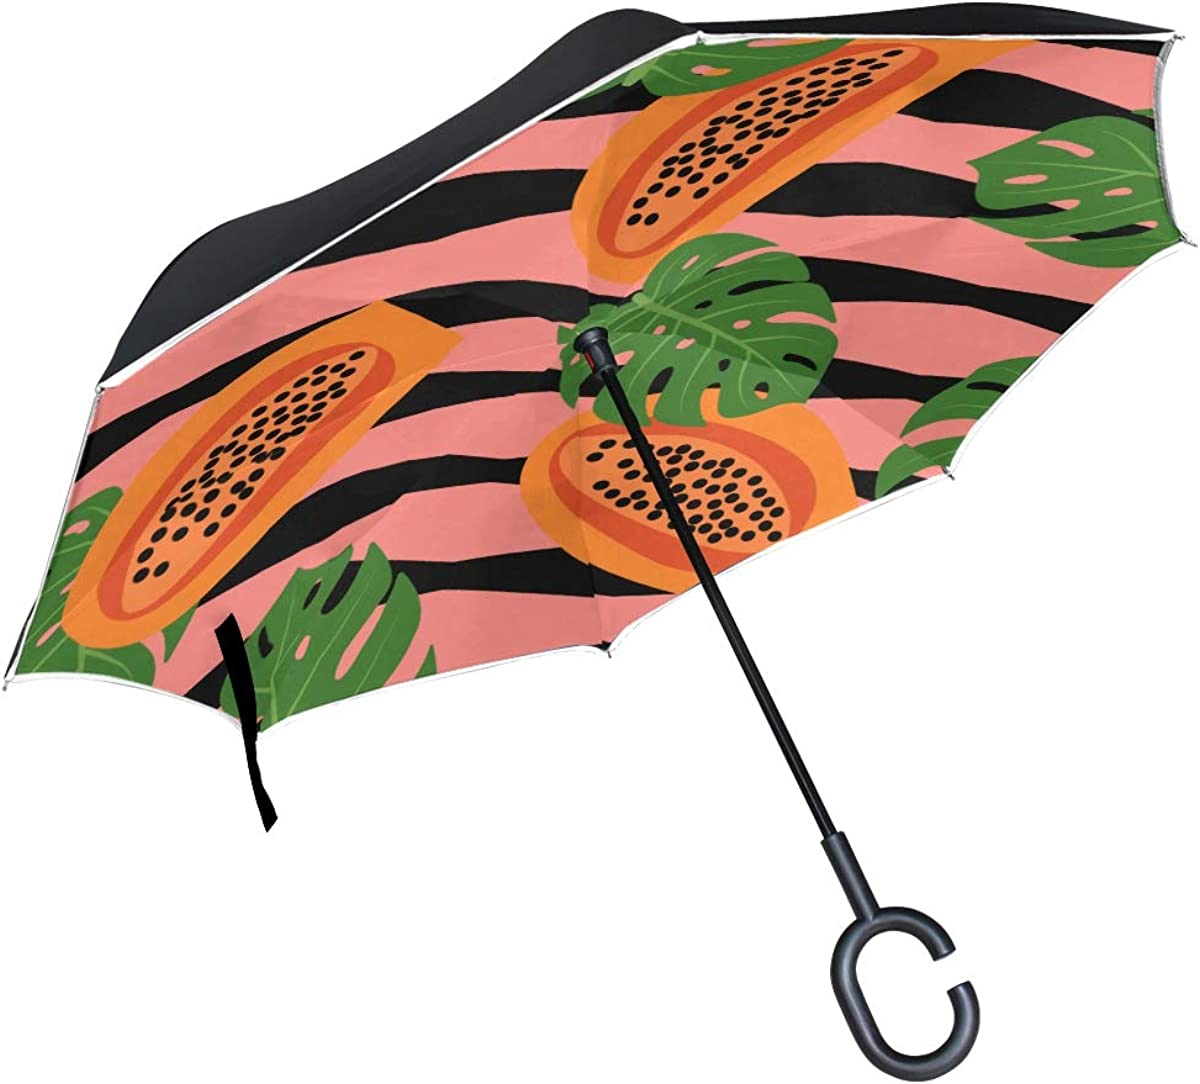 Inverted Umbrella Striped At the Max 58% OFF price Pattern Umbrell Tropical Fruits Papaya